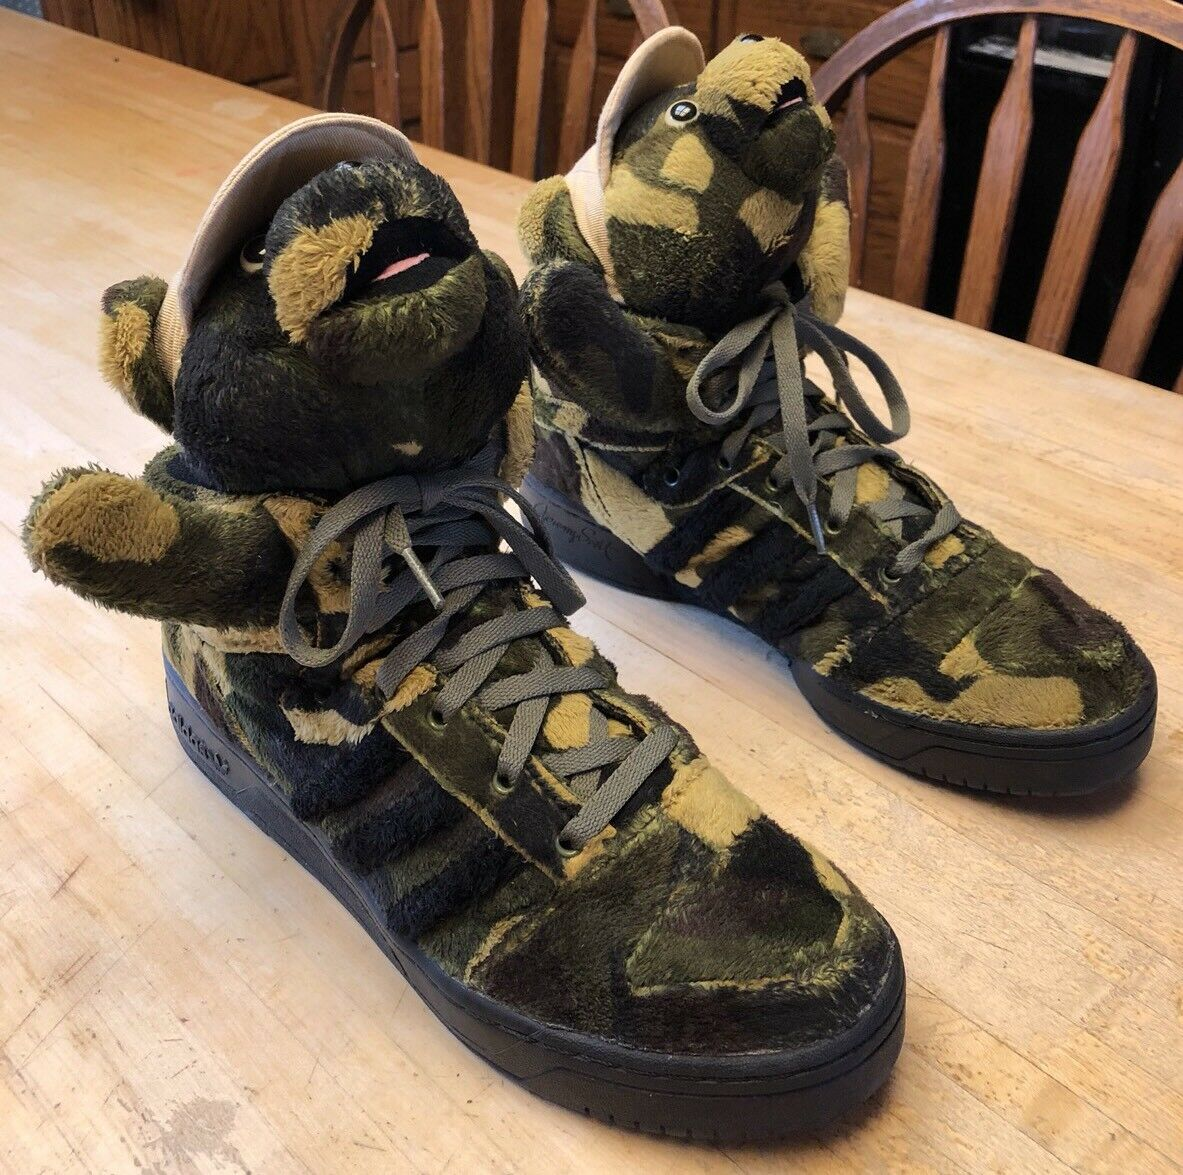 RARE Mens Adidas Jeremy Scott Camouflage Army Teddy Bear shoes Q20917 Size 10